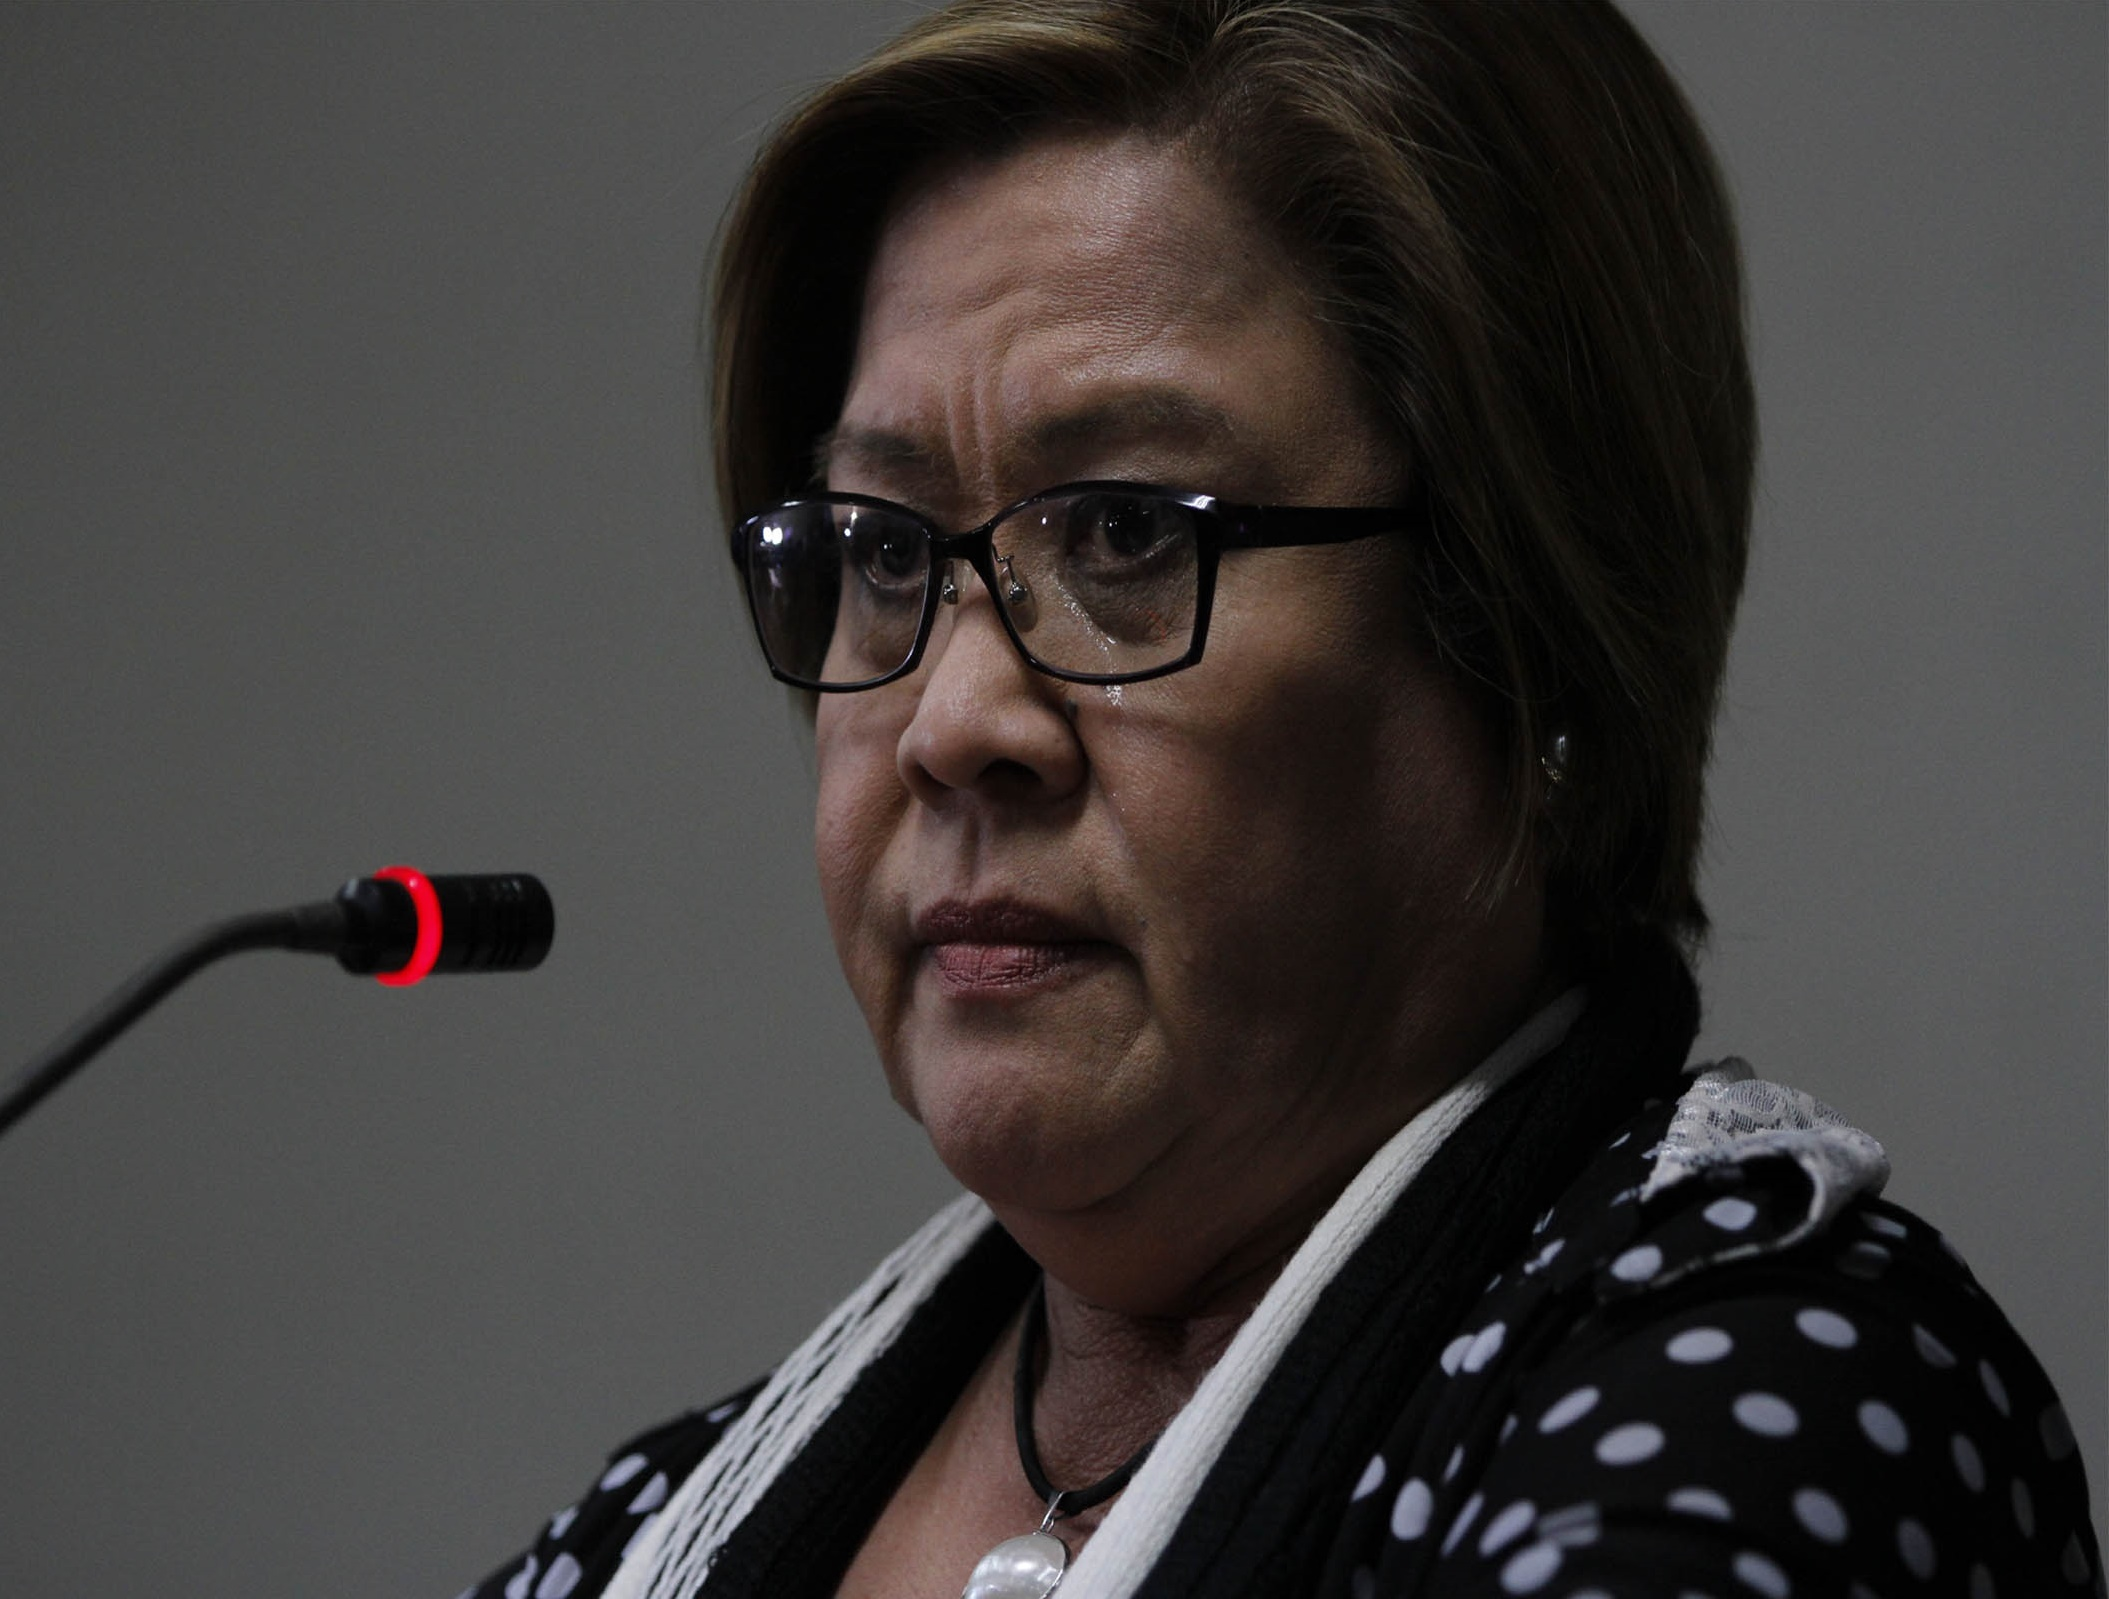 Senator Leila De Lima tries to hold off tears while giving a statement on her arrest warrant during a press conference at the Senate on Thursday (Feb. 23, 2017). (PNA photo by Avito C. Dalan)